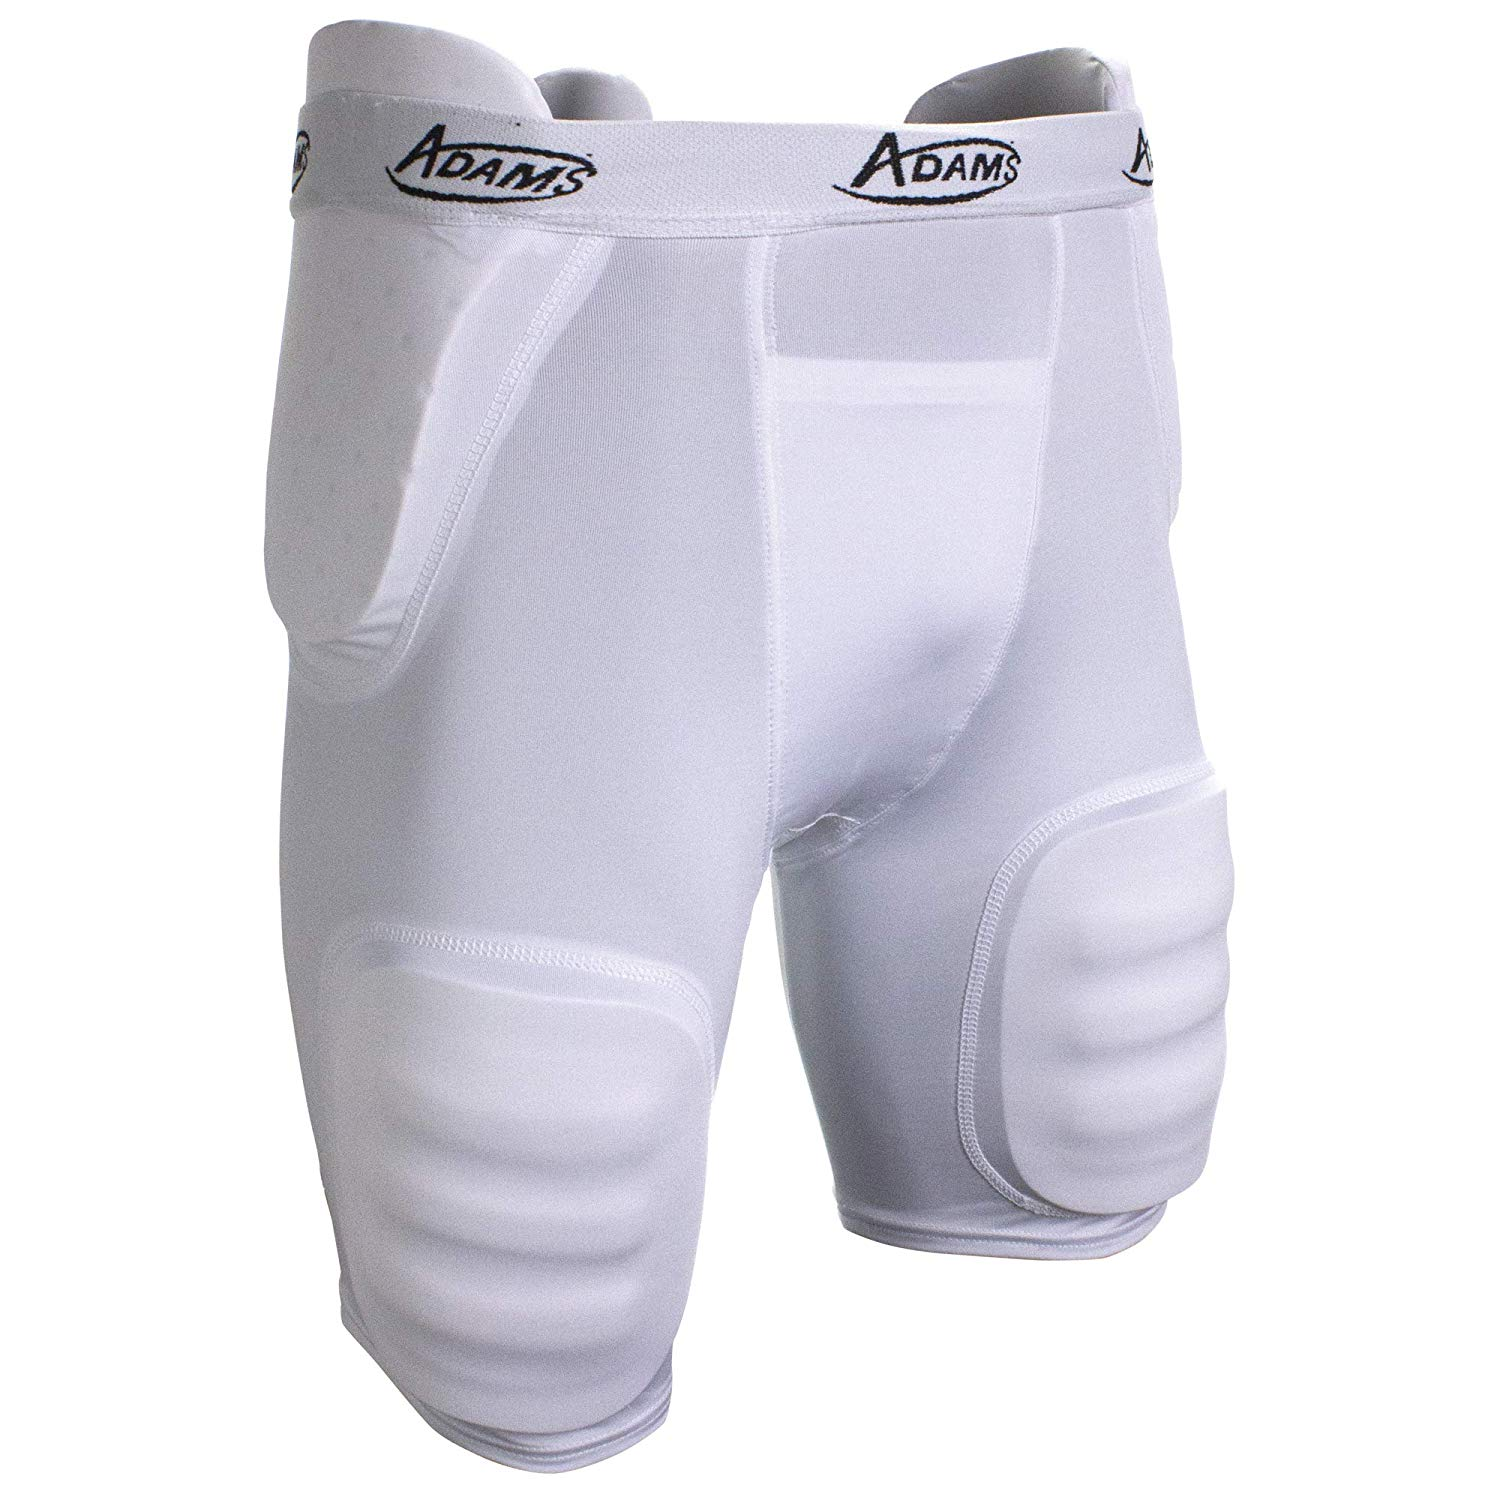 72abd615e6a97 Get Quotations · Adams USA Girdle High Rise Football Girdle with Integrated  Pads, White/Charcoal Gray,